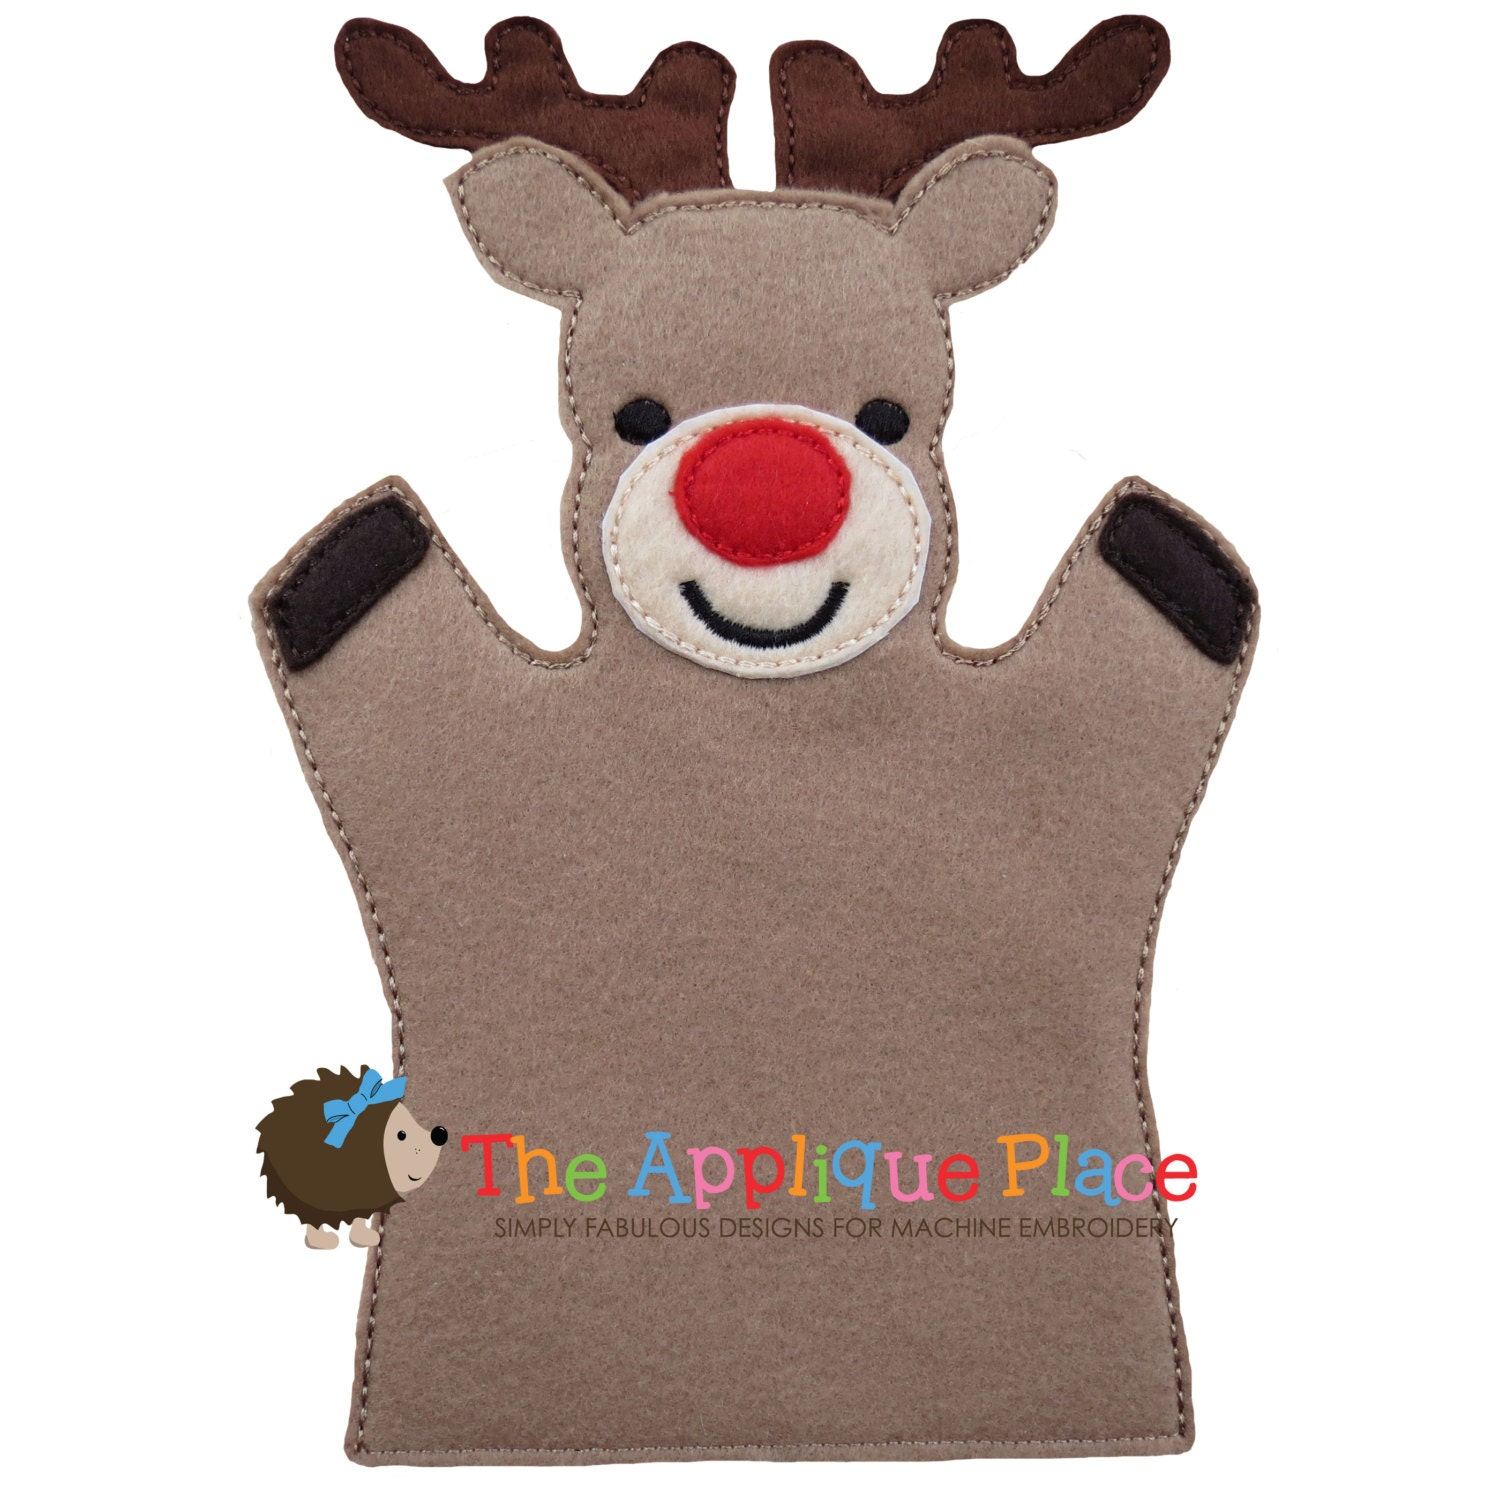 reindeer and dinosaur puppets - photo #19